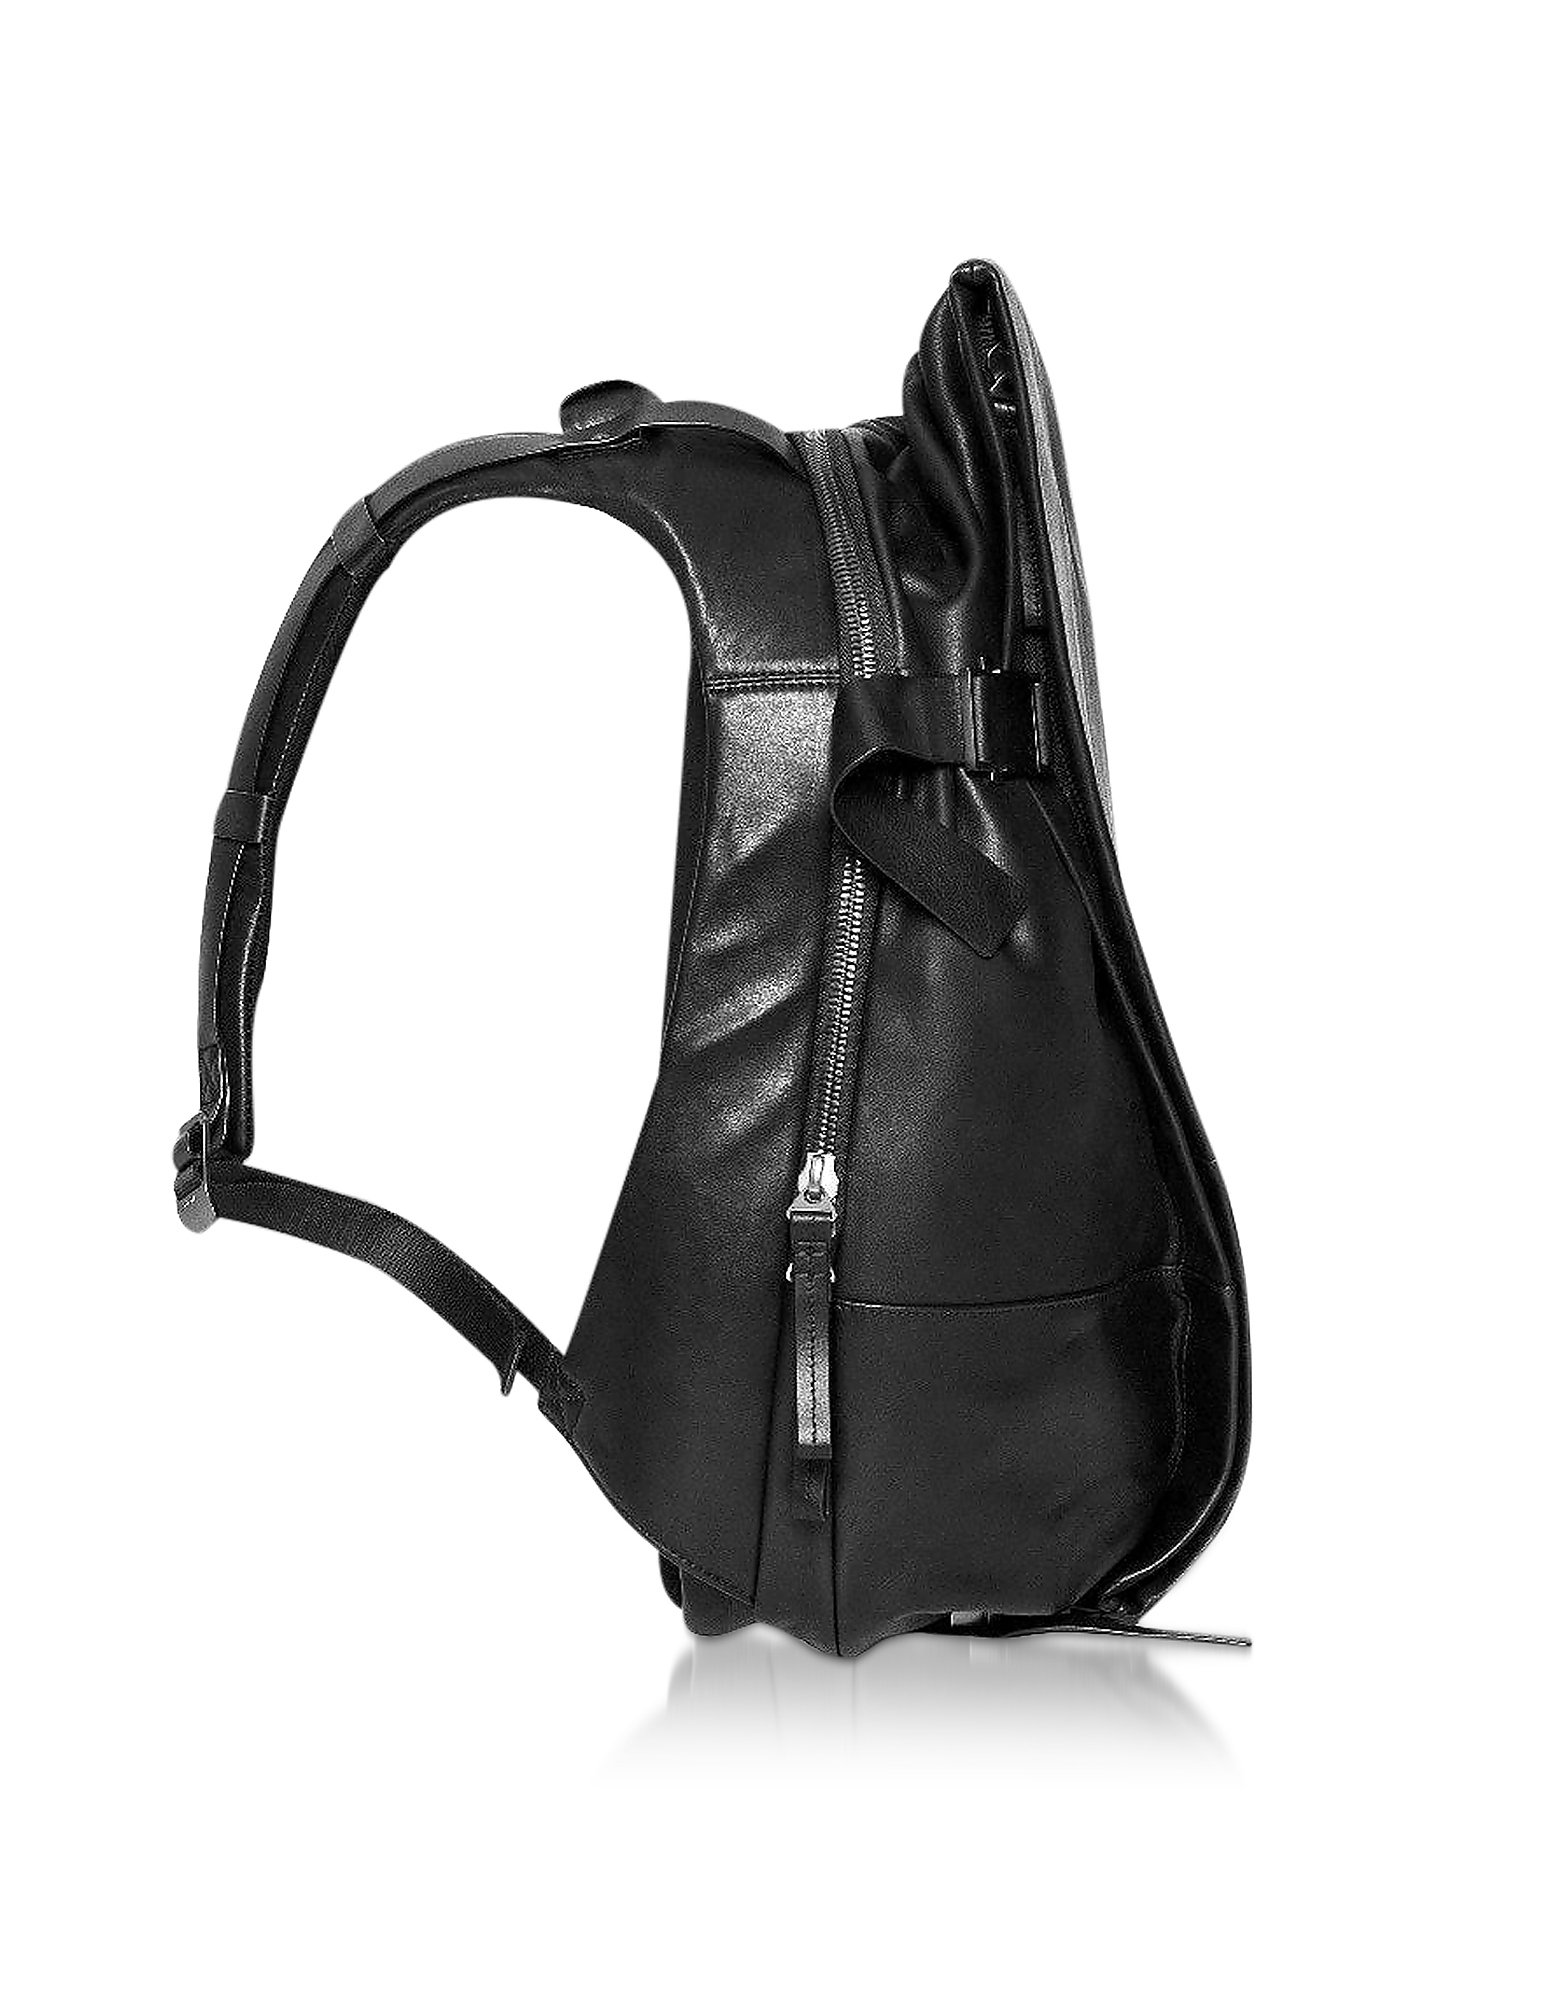 Black Leather ISAR M Backpack